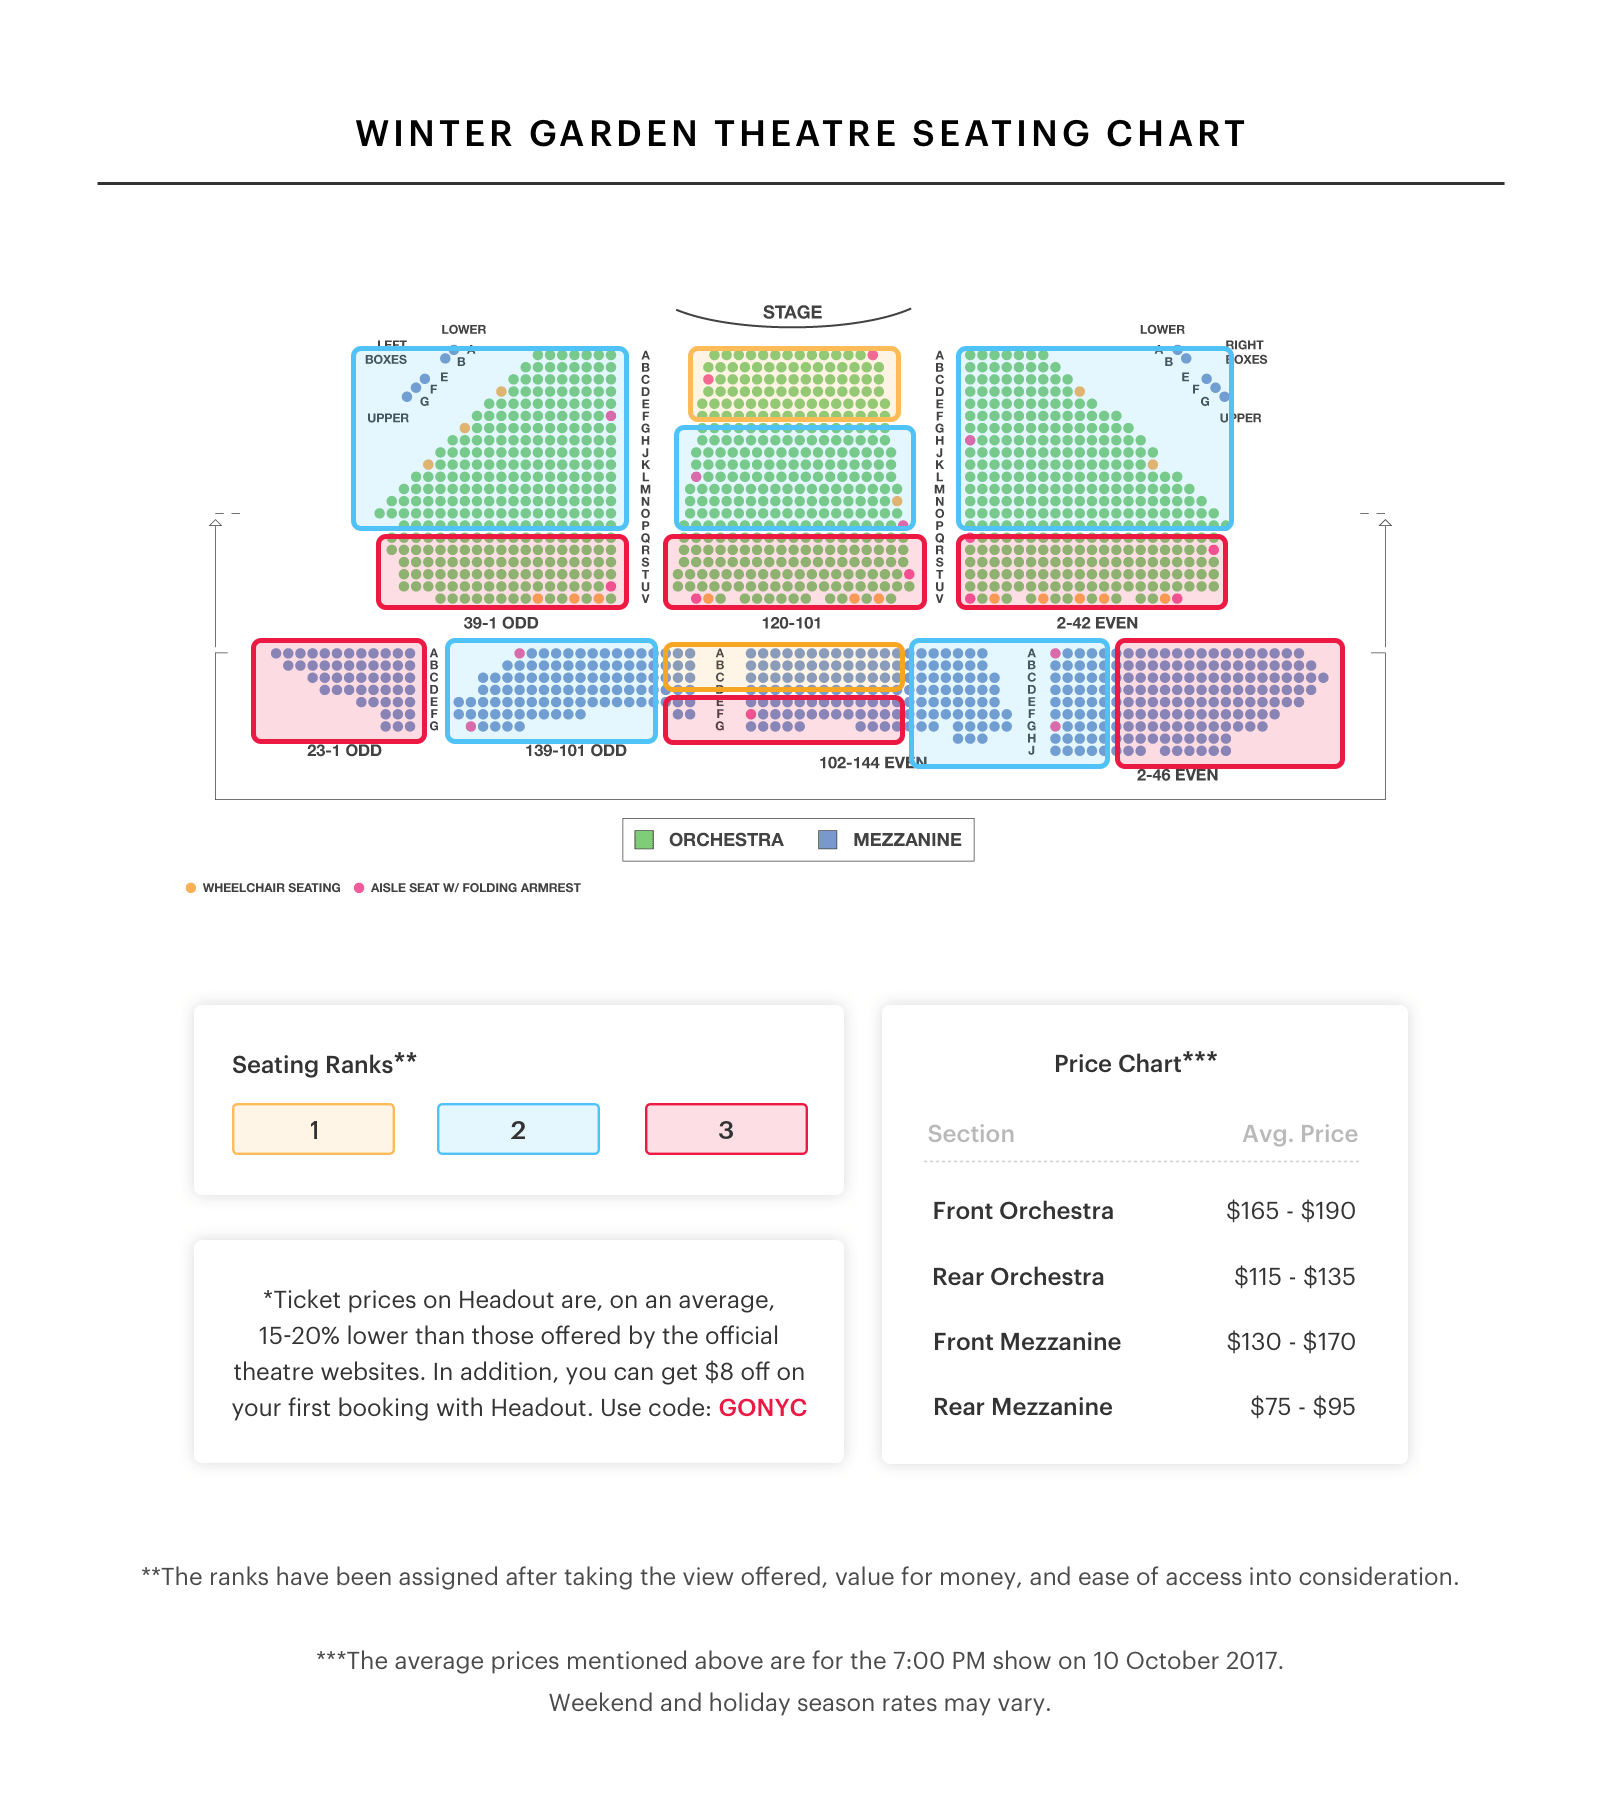 Navigating The Winter Garden Theatre Seating Chart